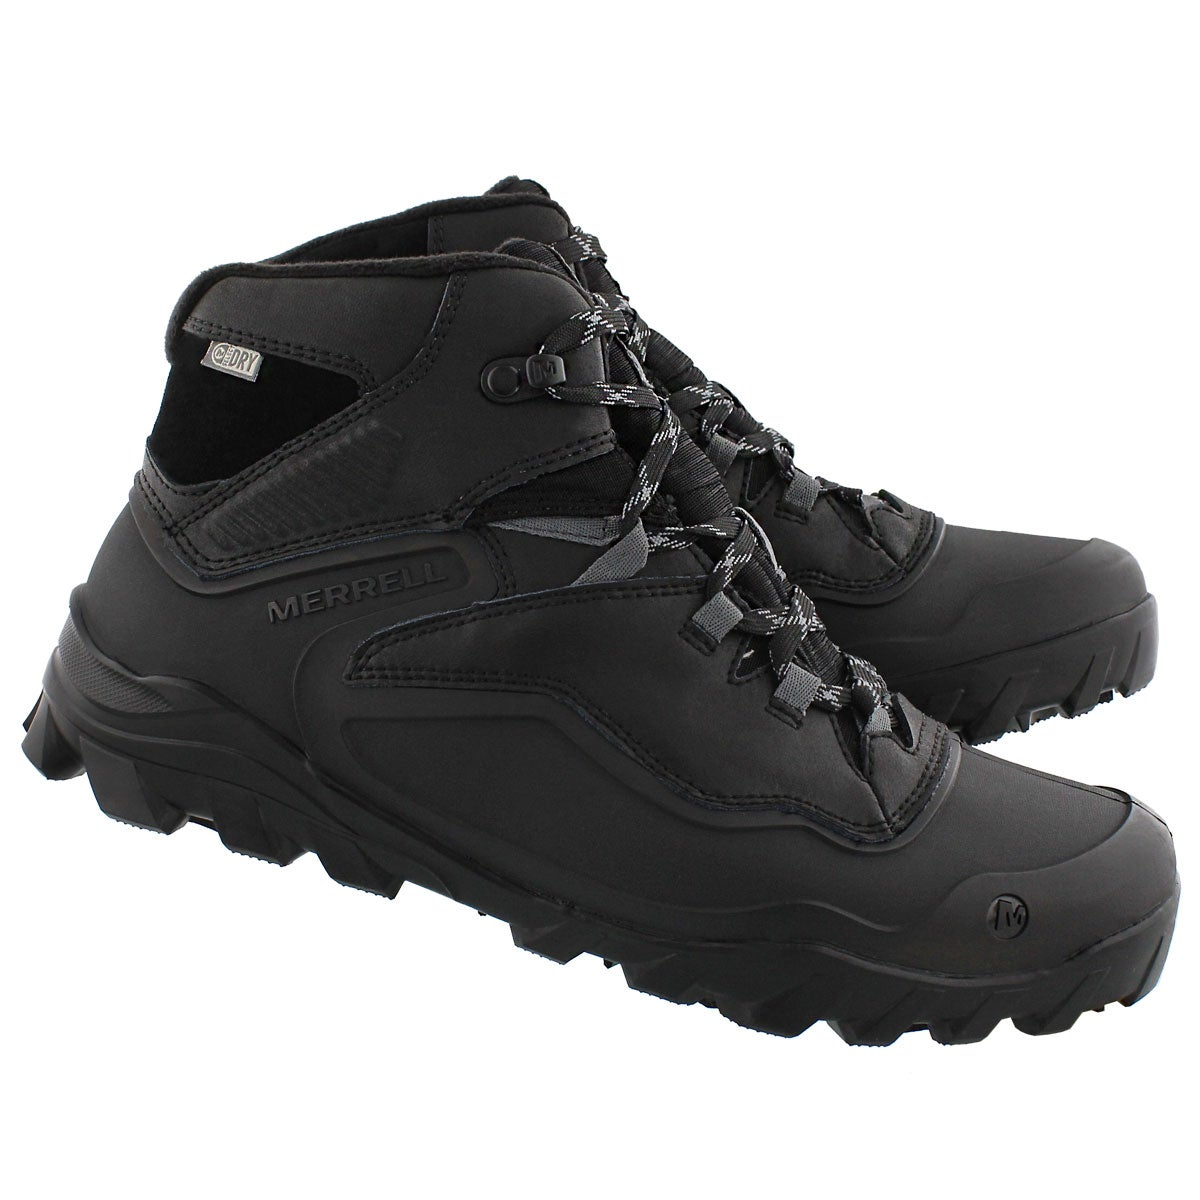 Mns Overlook 6 Ice black hiking boot